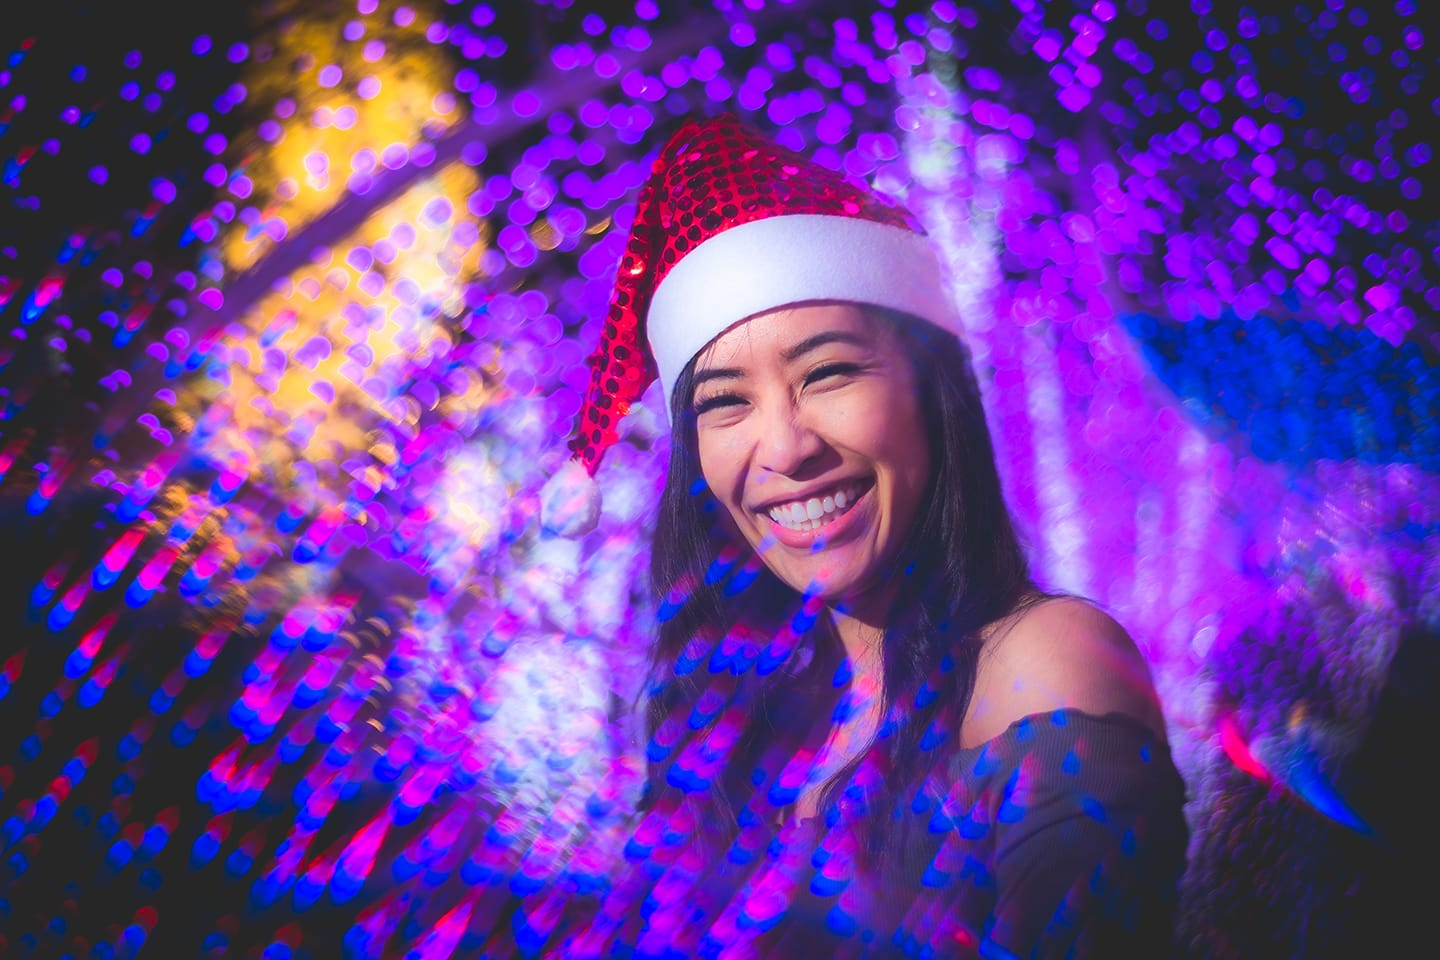 fractals-girl-christmas-lights-purple-laughing